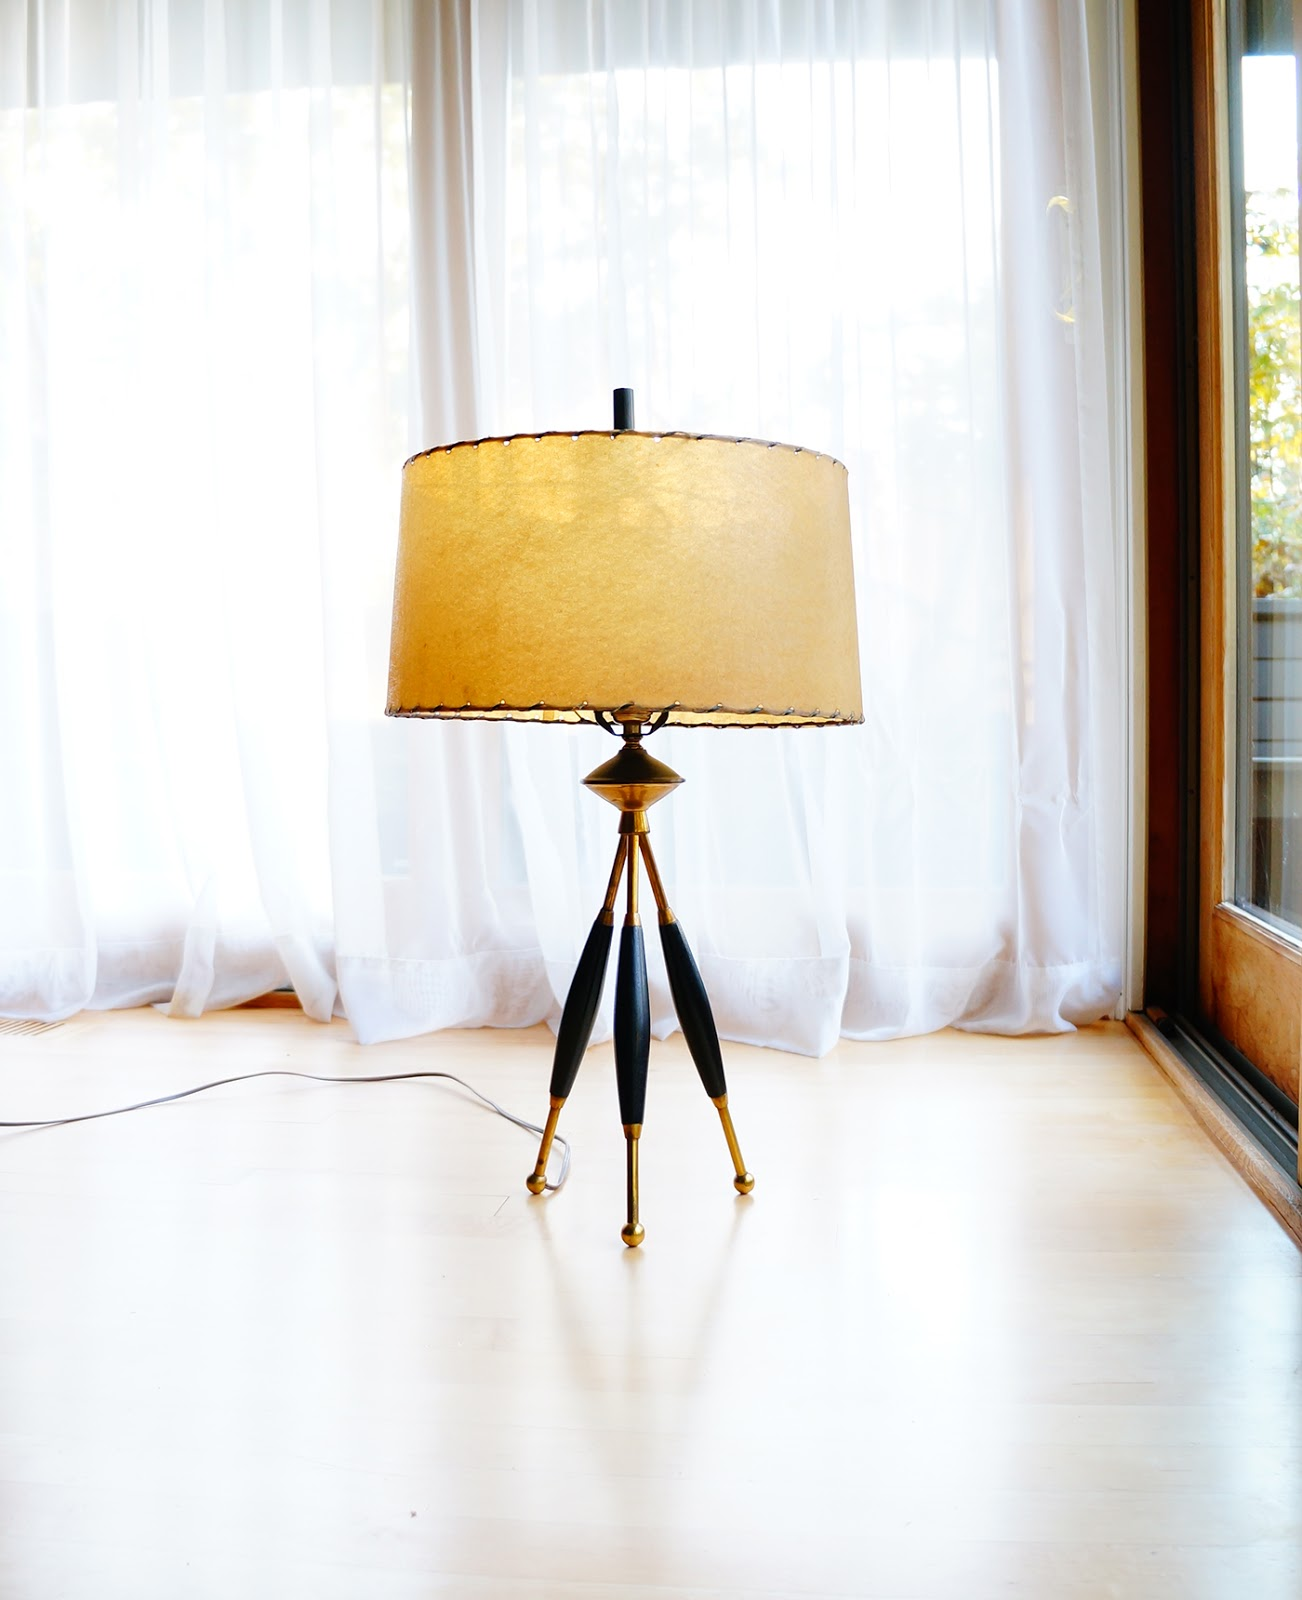 Awe Inspiring Str8Mcm Select Mid Century Table Lamps Interior Design Ideas Tzicisoteloinfo